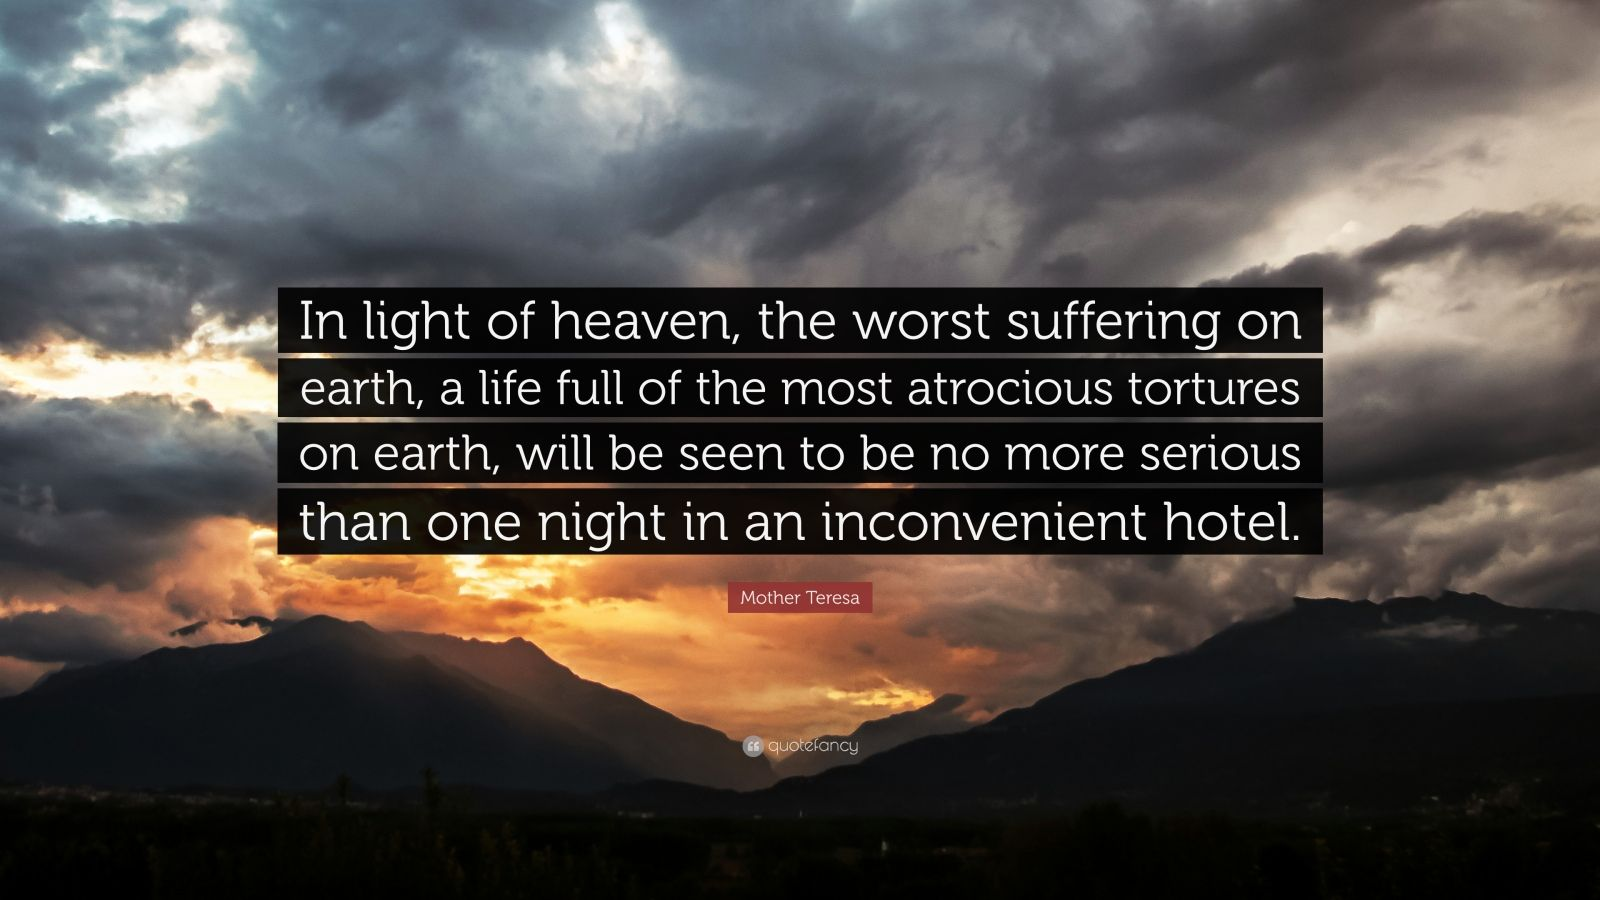 """Mother Teresa Quote: """"In light of heaven, the worst suffering on earth, a life full of the most atrocious tortures on earth, will be seen to be no more serious than one night in an inconvenient hotel."""""""